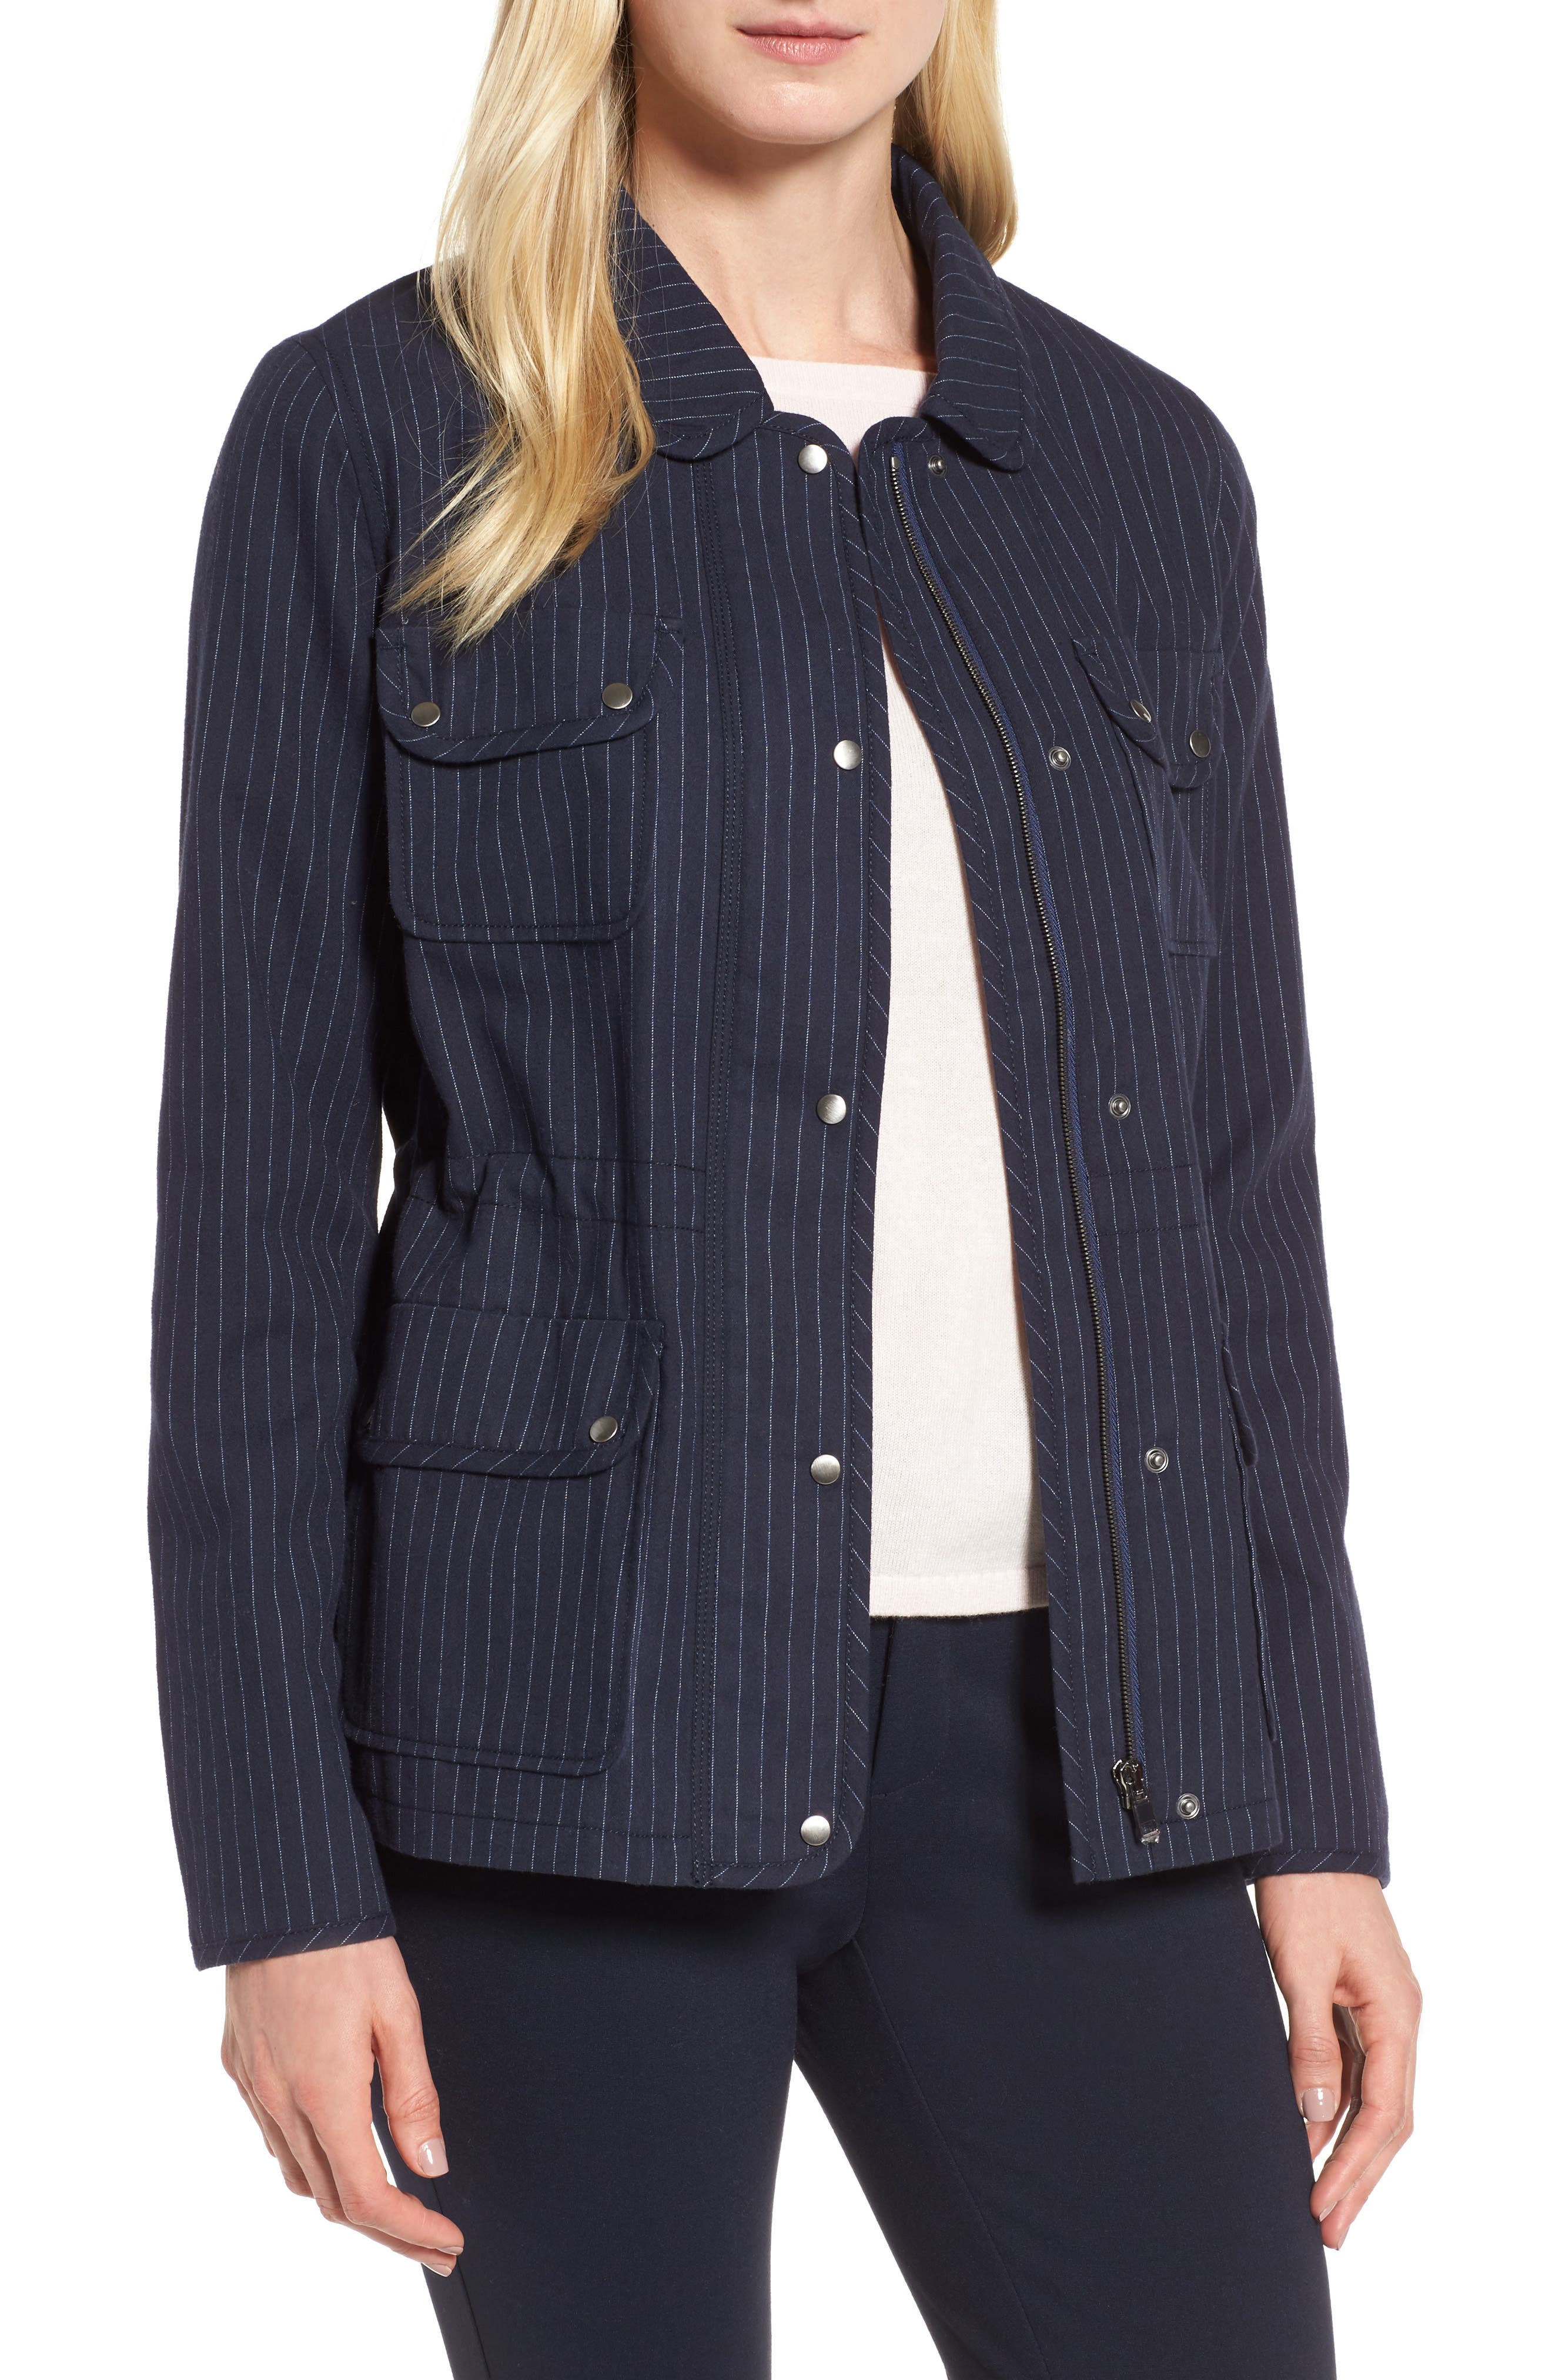 Pinstripe Utility Jacket,                             Main thumbnail 1, color,                             Navy- Ivory Pinstripe